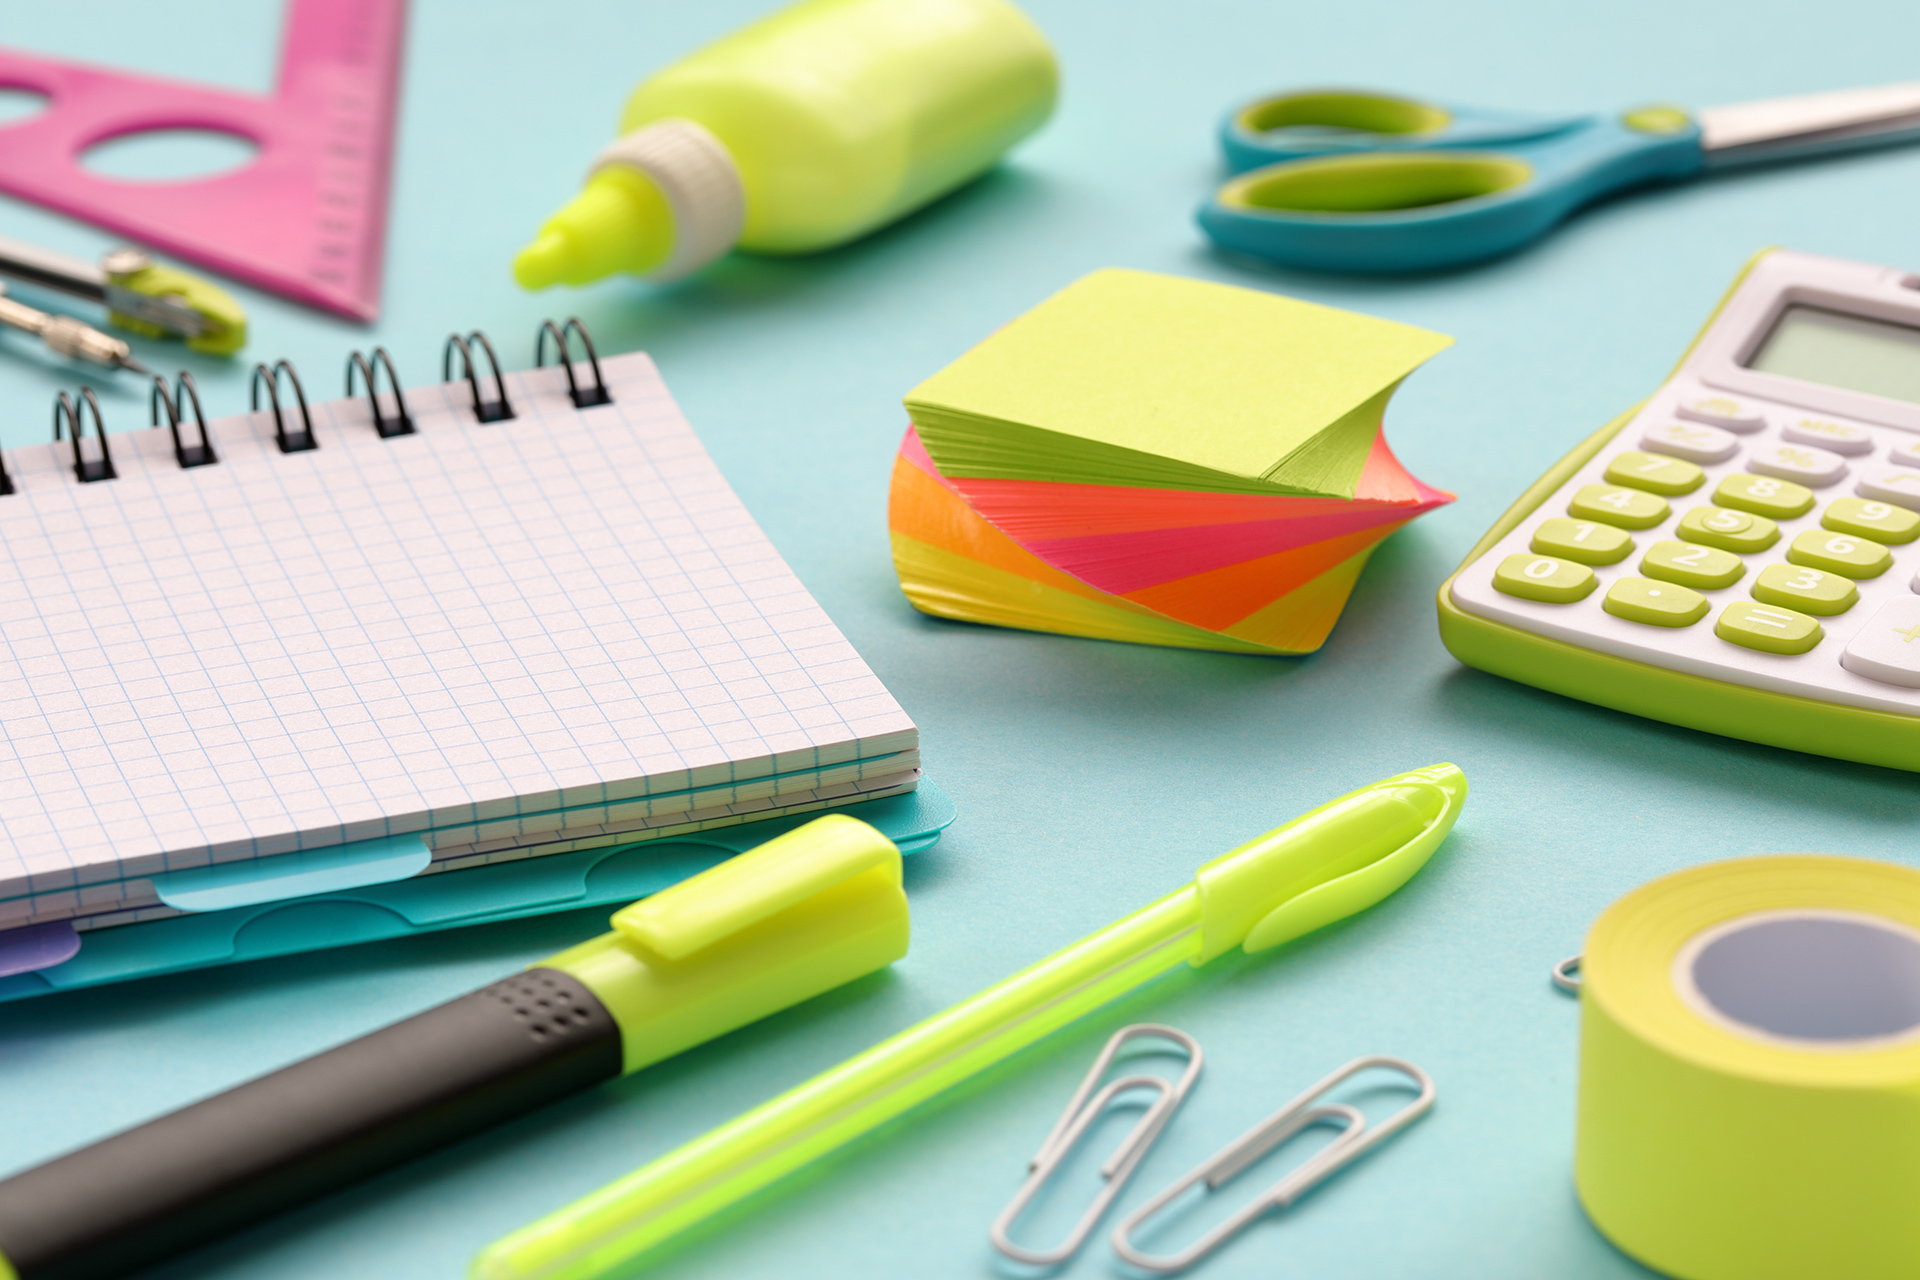 photo of office desk supplies